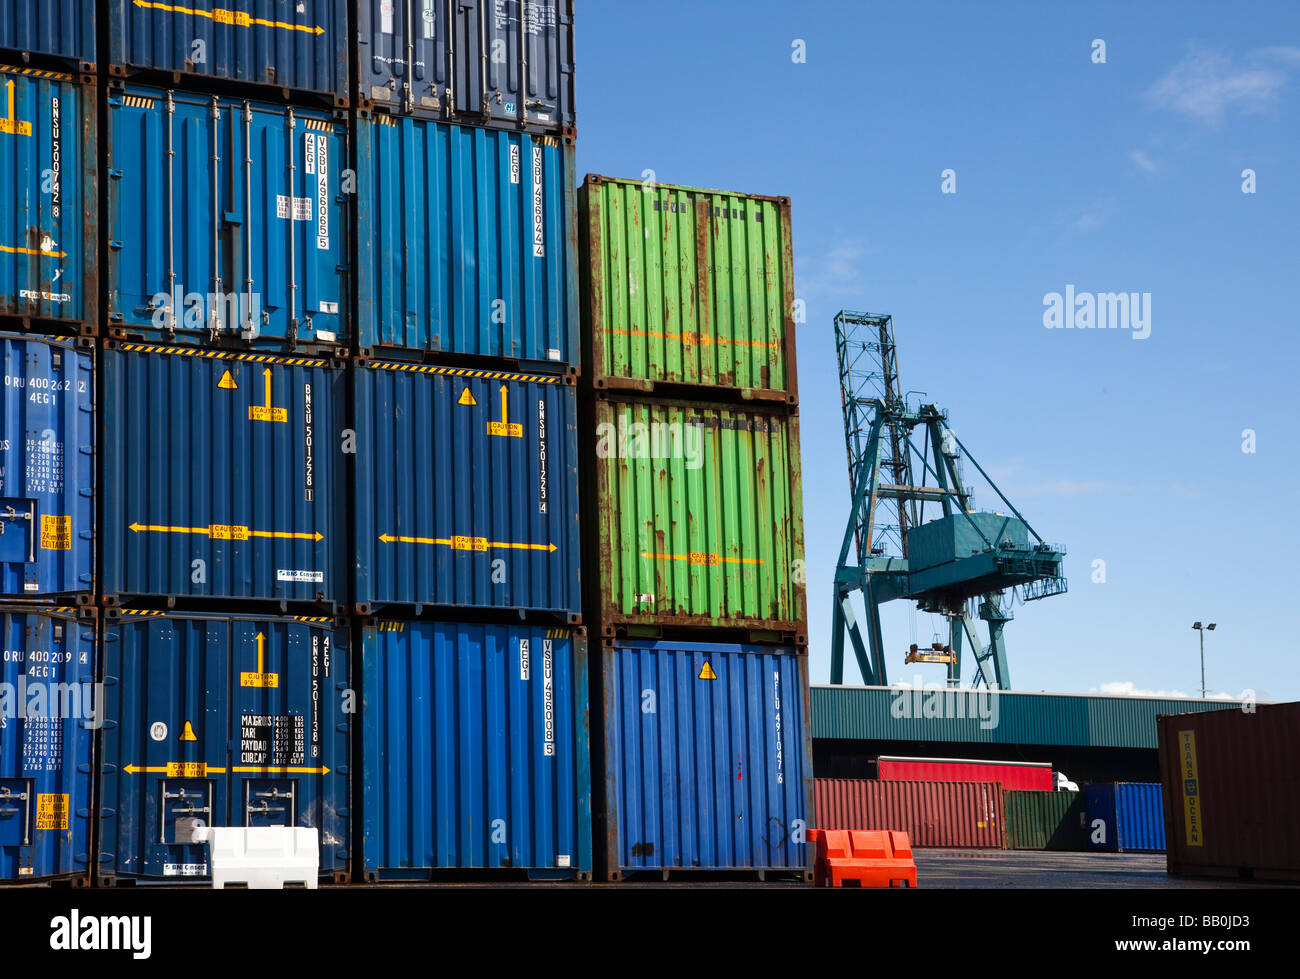 Crane and containers on a dockside ready for loading onto a container ship, Greenock, Scotland - Stock Image